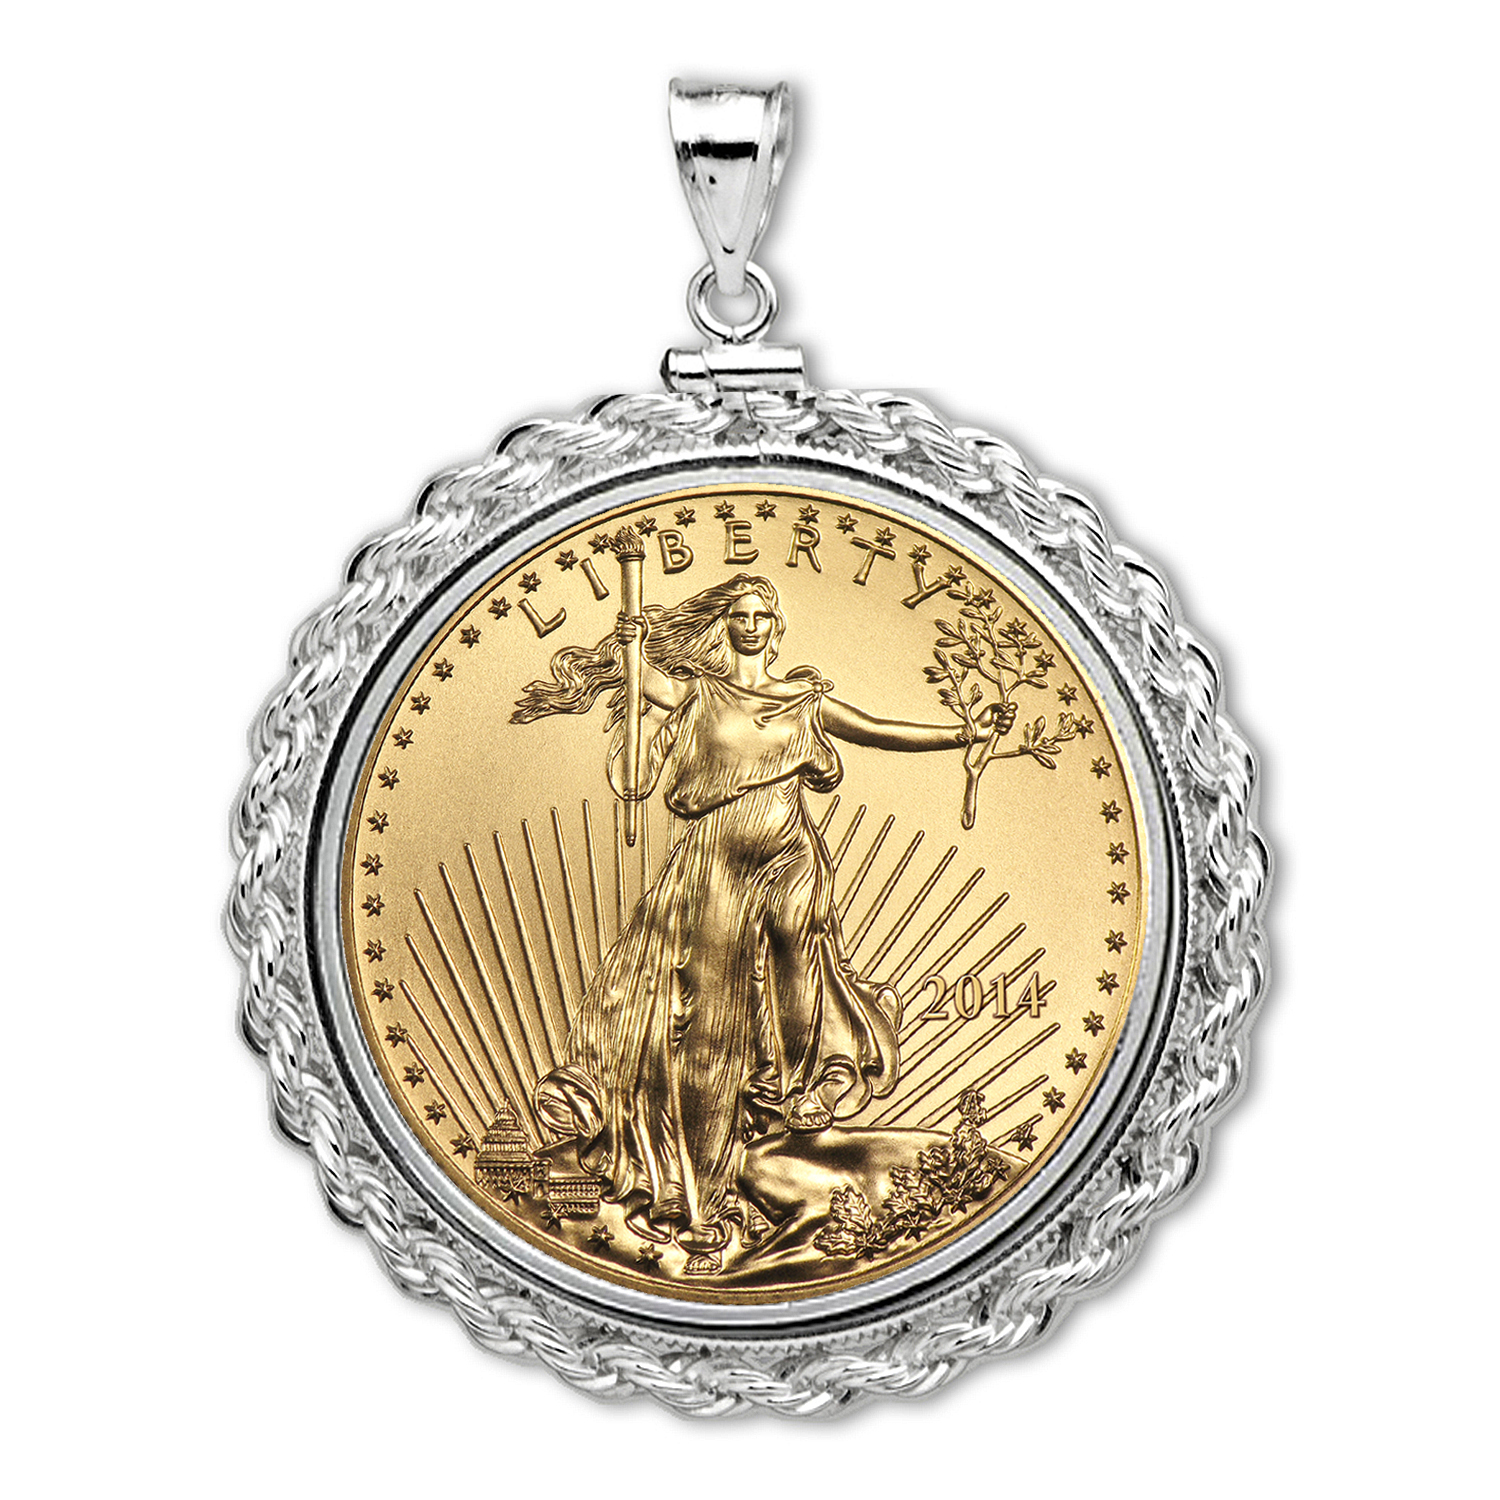 2014 1/10 oz Gold Eagle White Gold Pendant (Rope-ScrewTop Bezel)